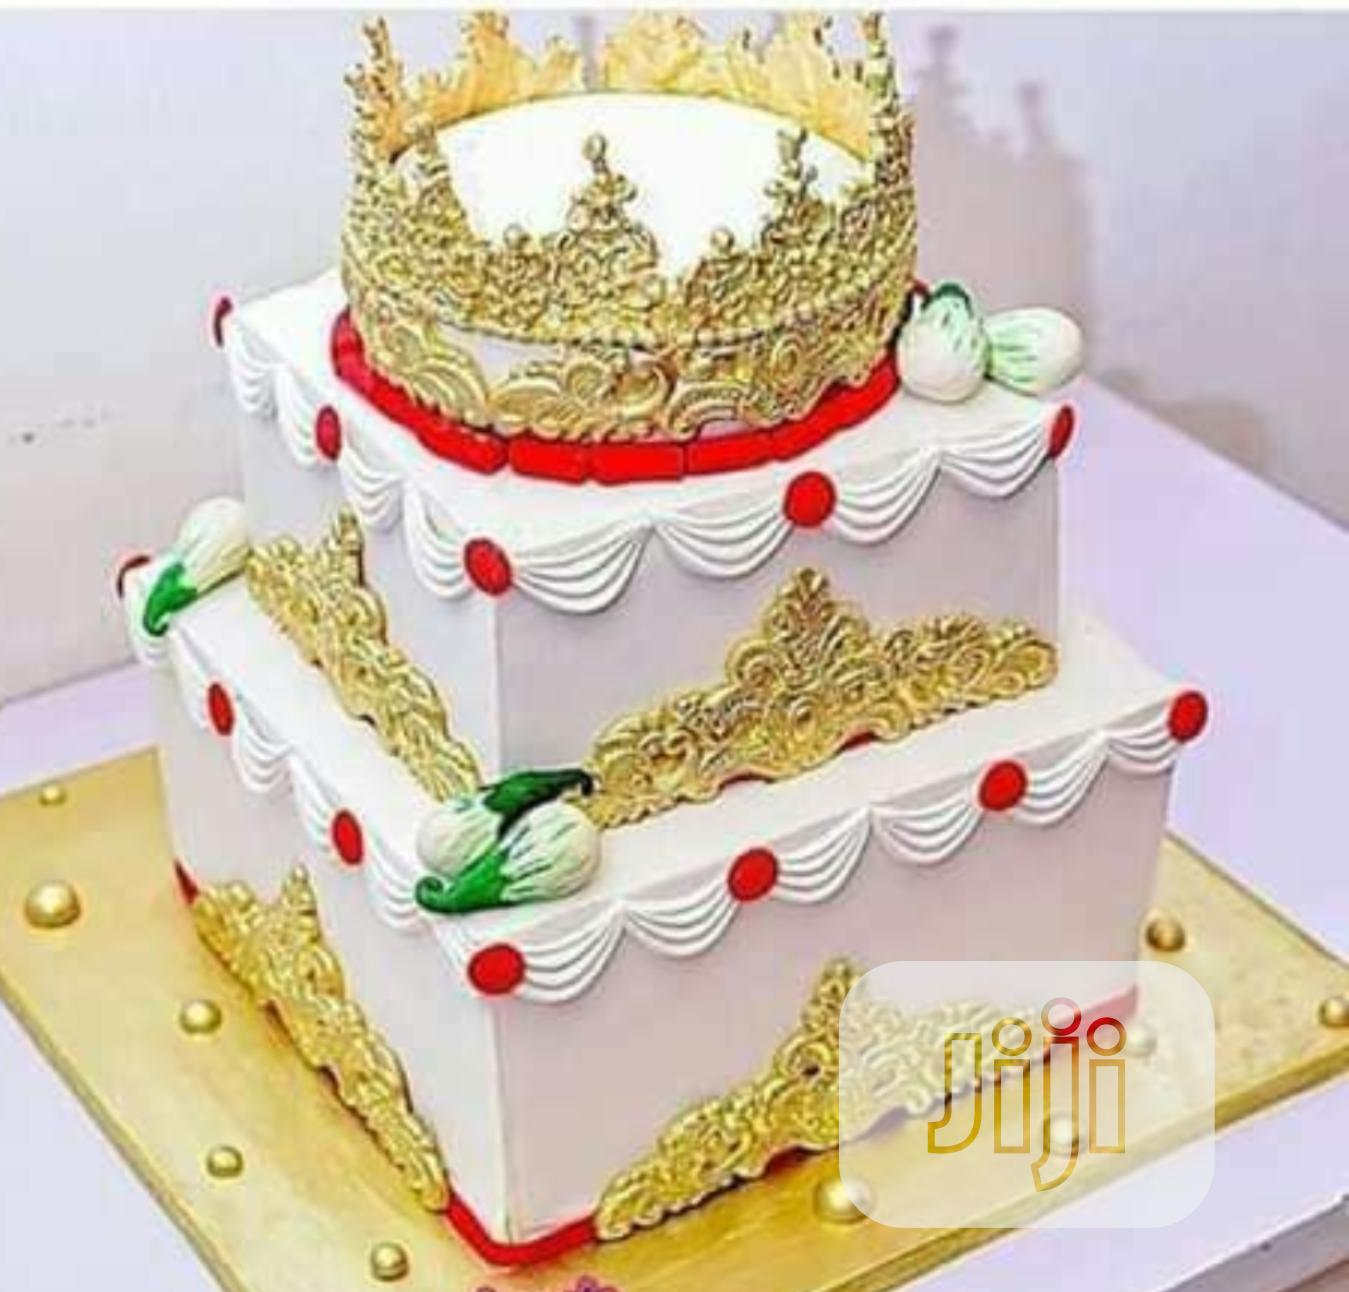 Wedding Cakes   Wedding Venues & Services for sale in Agboyi/Ketu, Lagos State, Nigeria